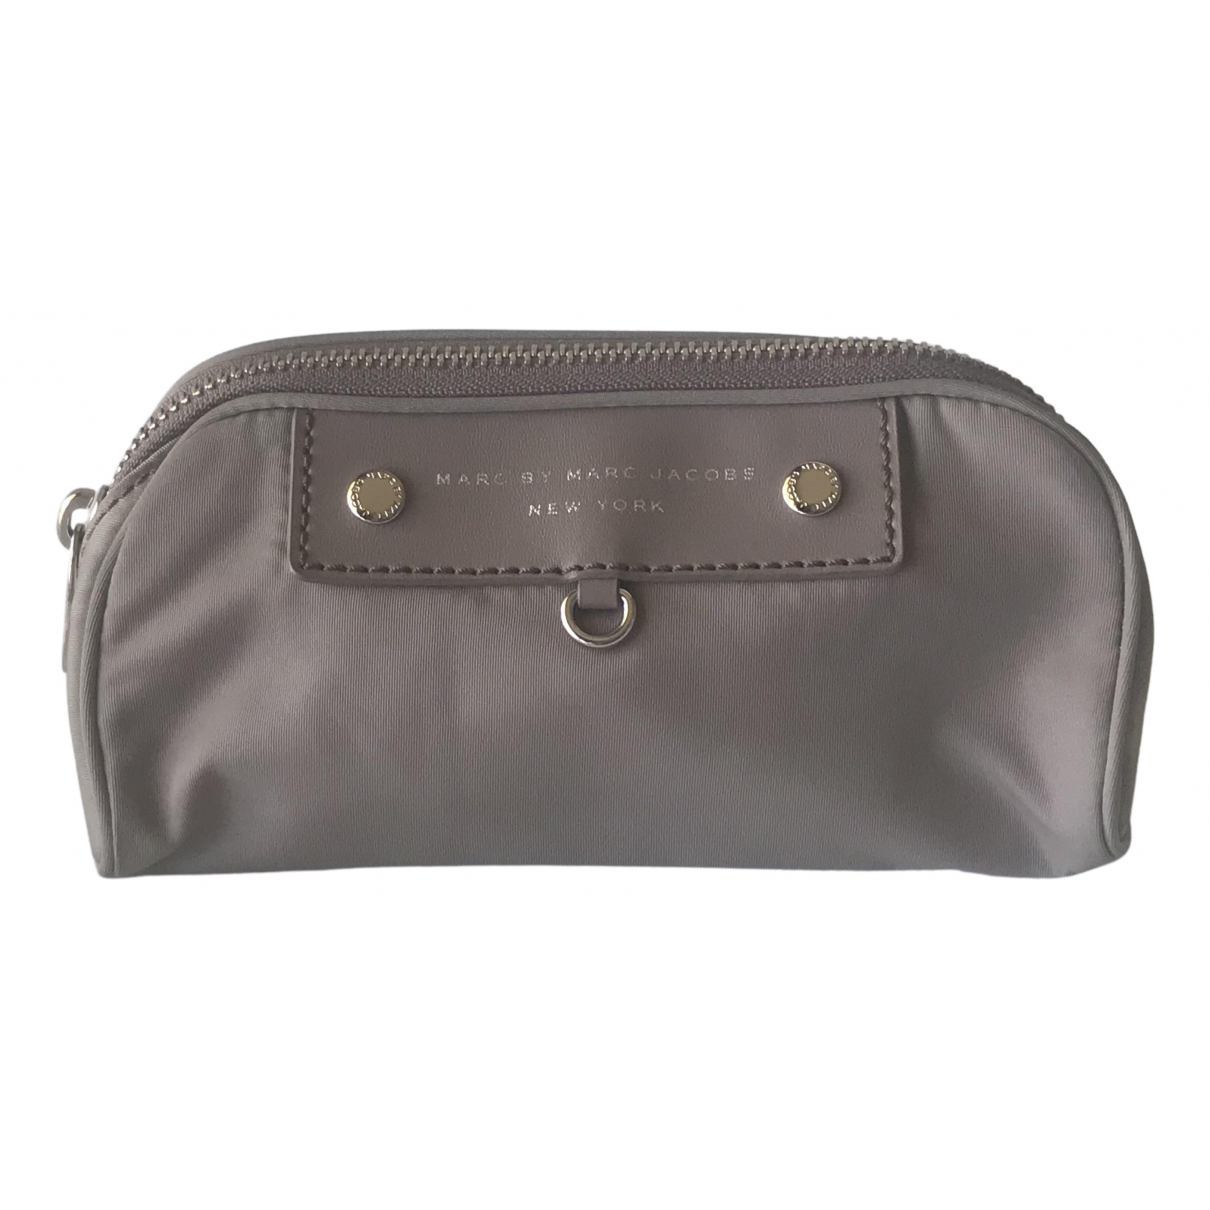 Marroquineria Marc By Marc Jacobs